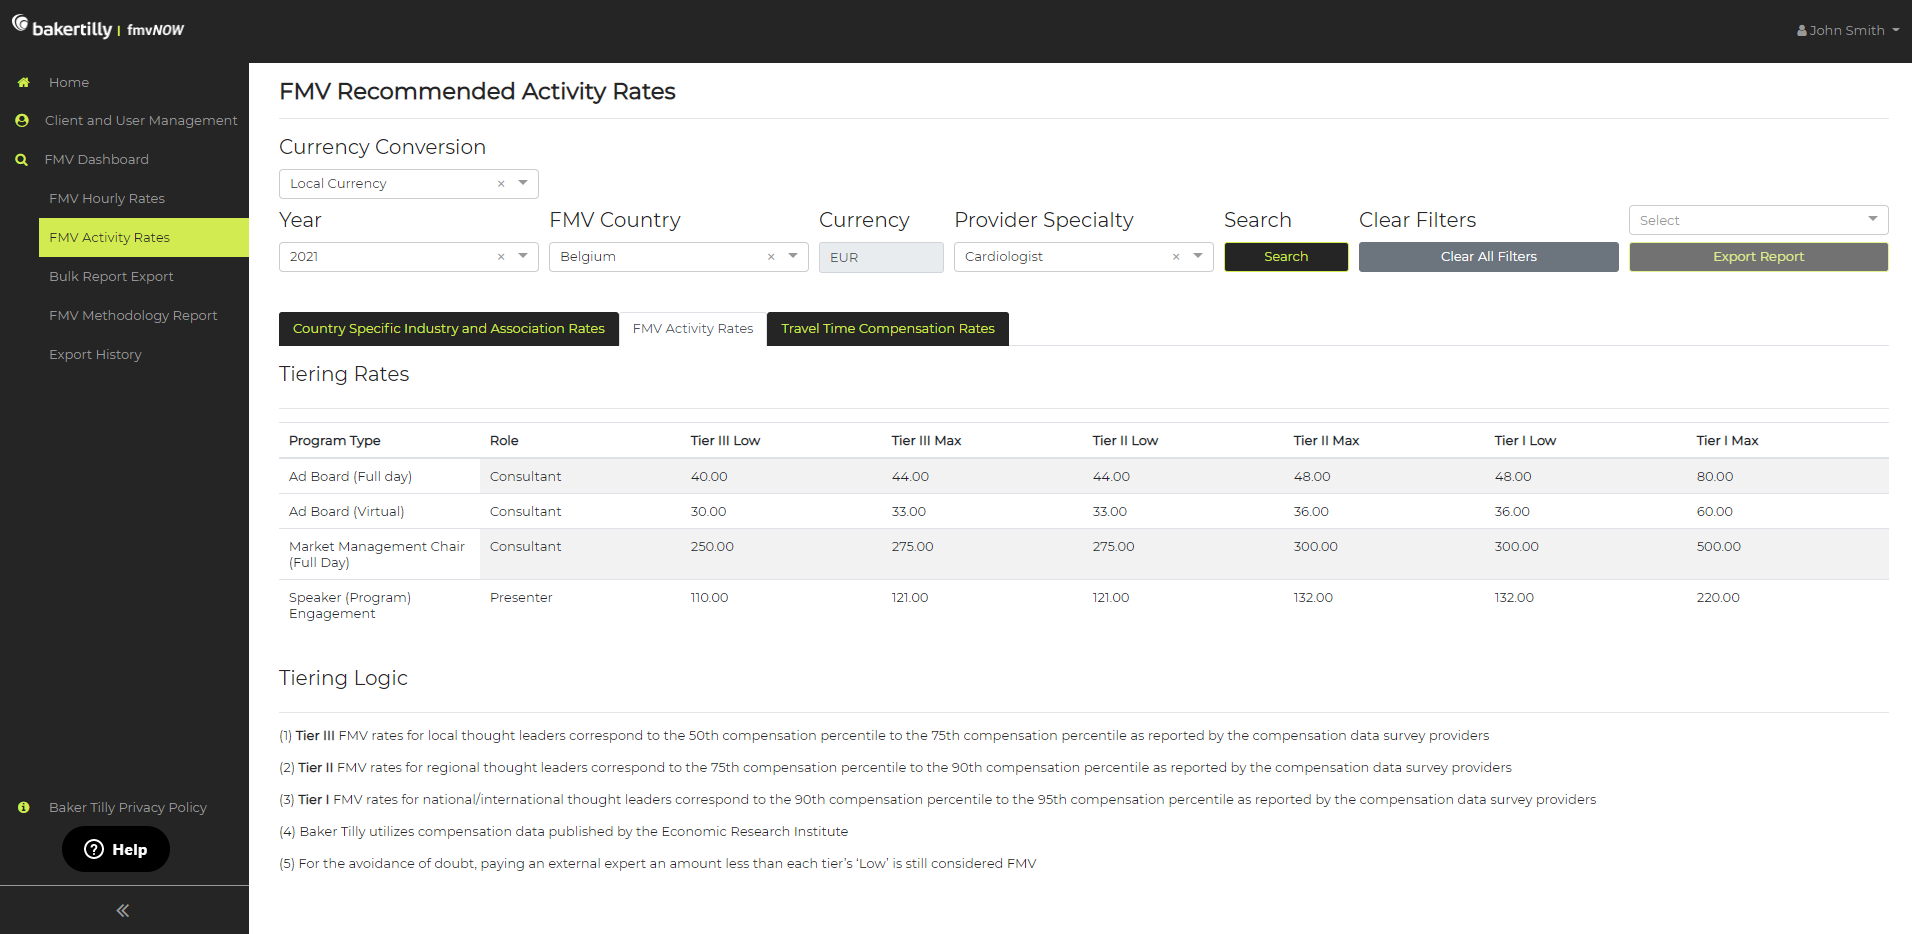 FMV Recommended Activity Rates for Fair Market Value (FMV) tool